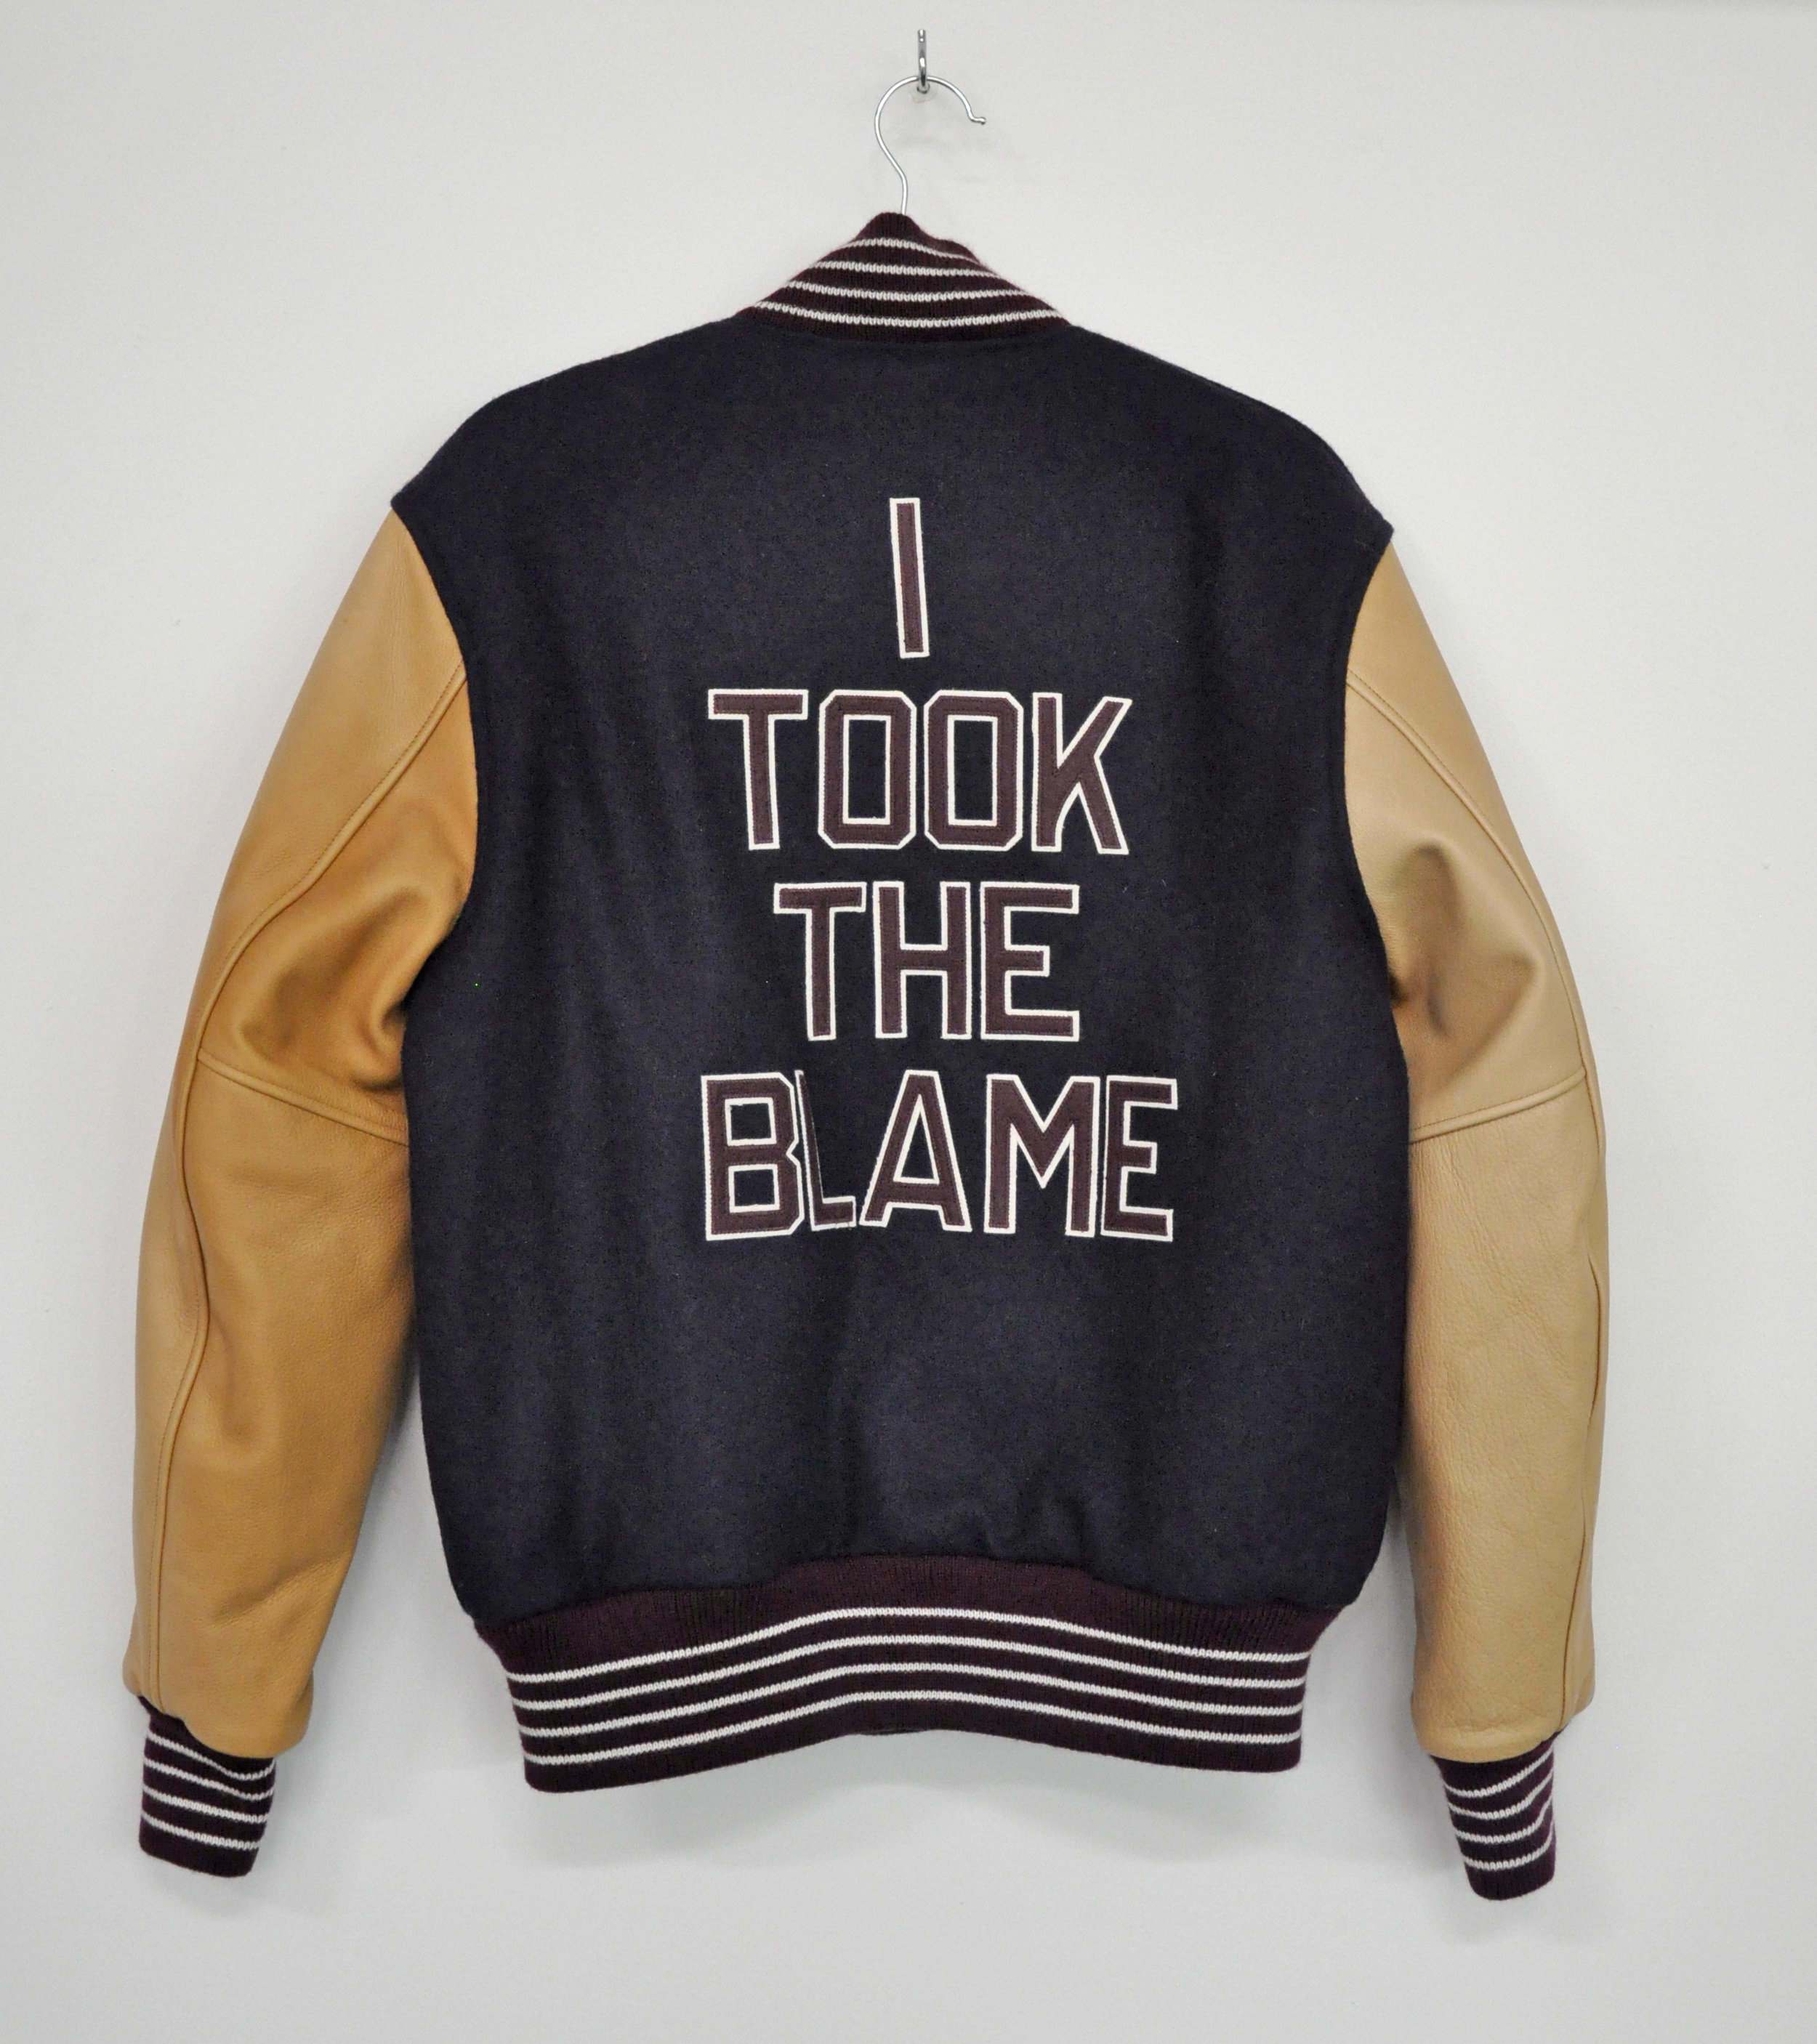 "Cheryl Pope, ""I TOOK THE BLAME"" from ""I'VE BEEN HEARD"", in collaboration with NYC Youth on Streetball (jacket), artist-designed letterman jacket, AP 1/2, 2017"